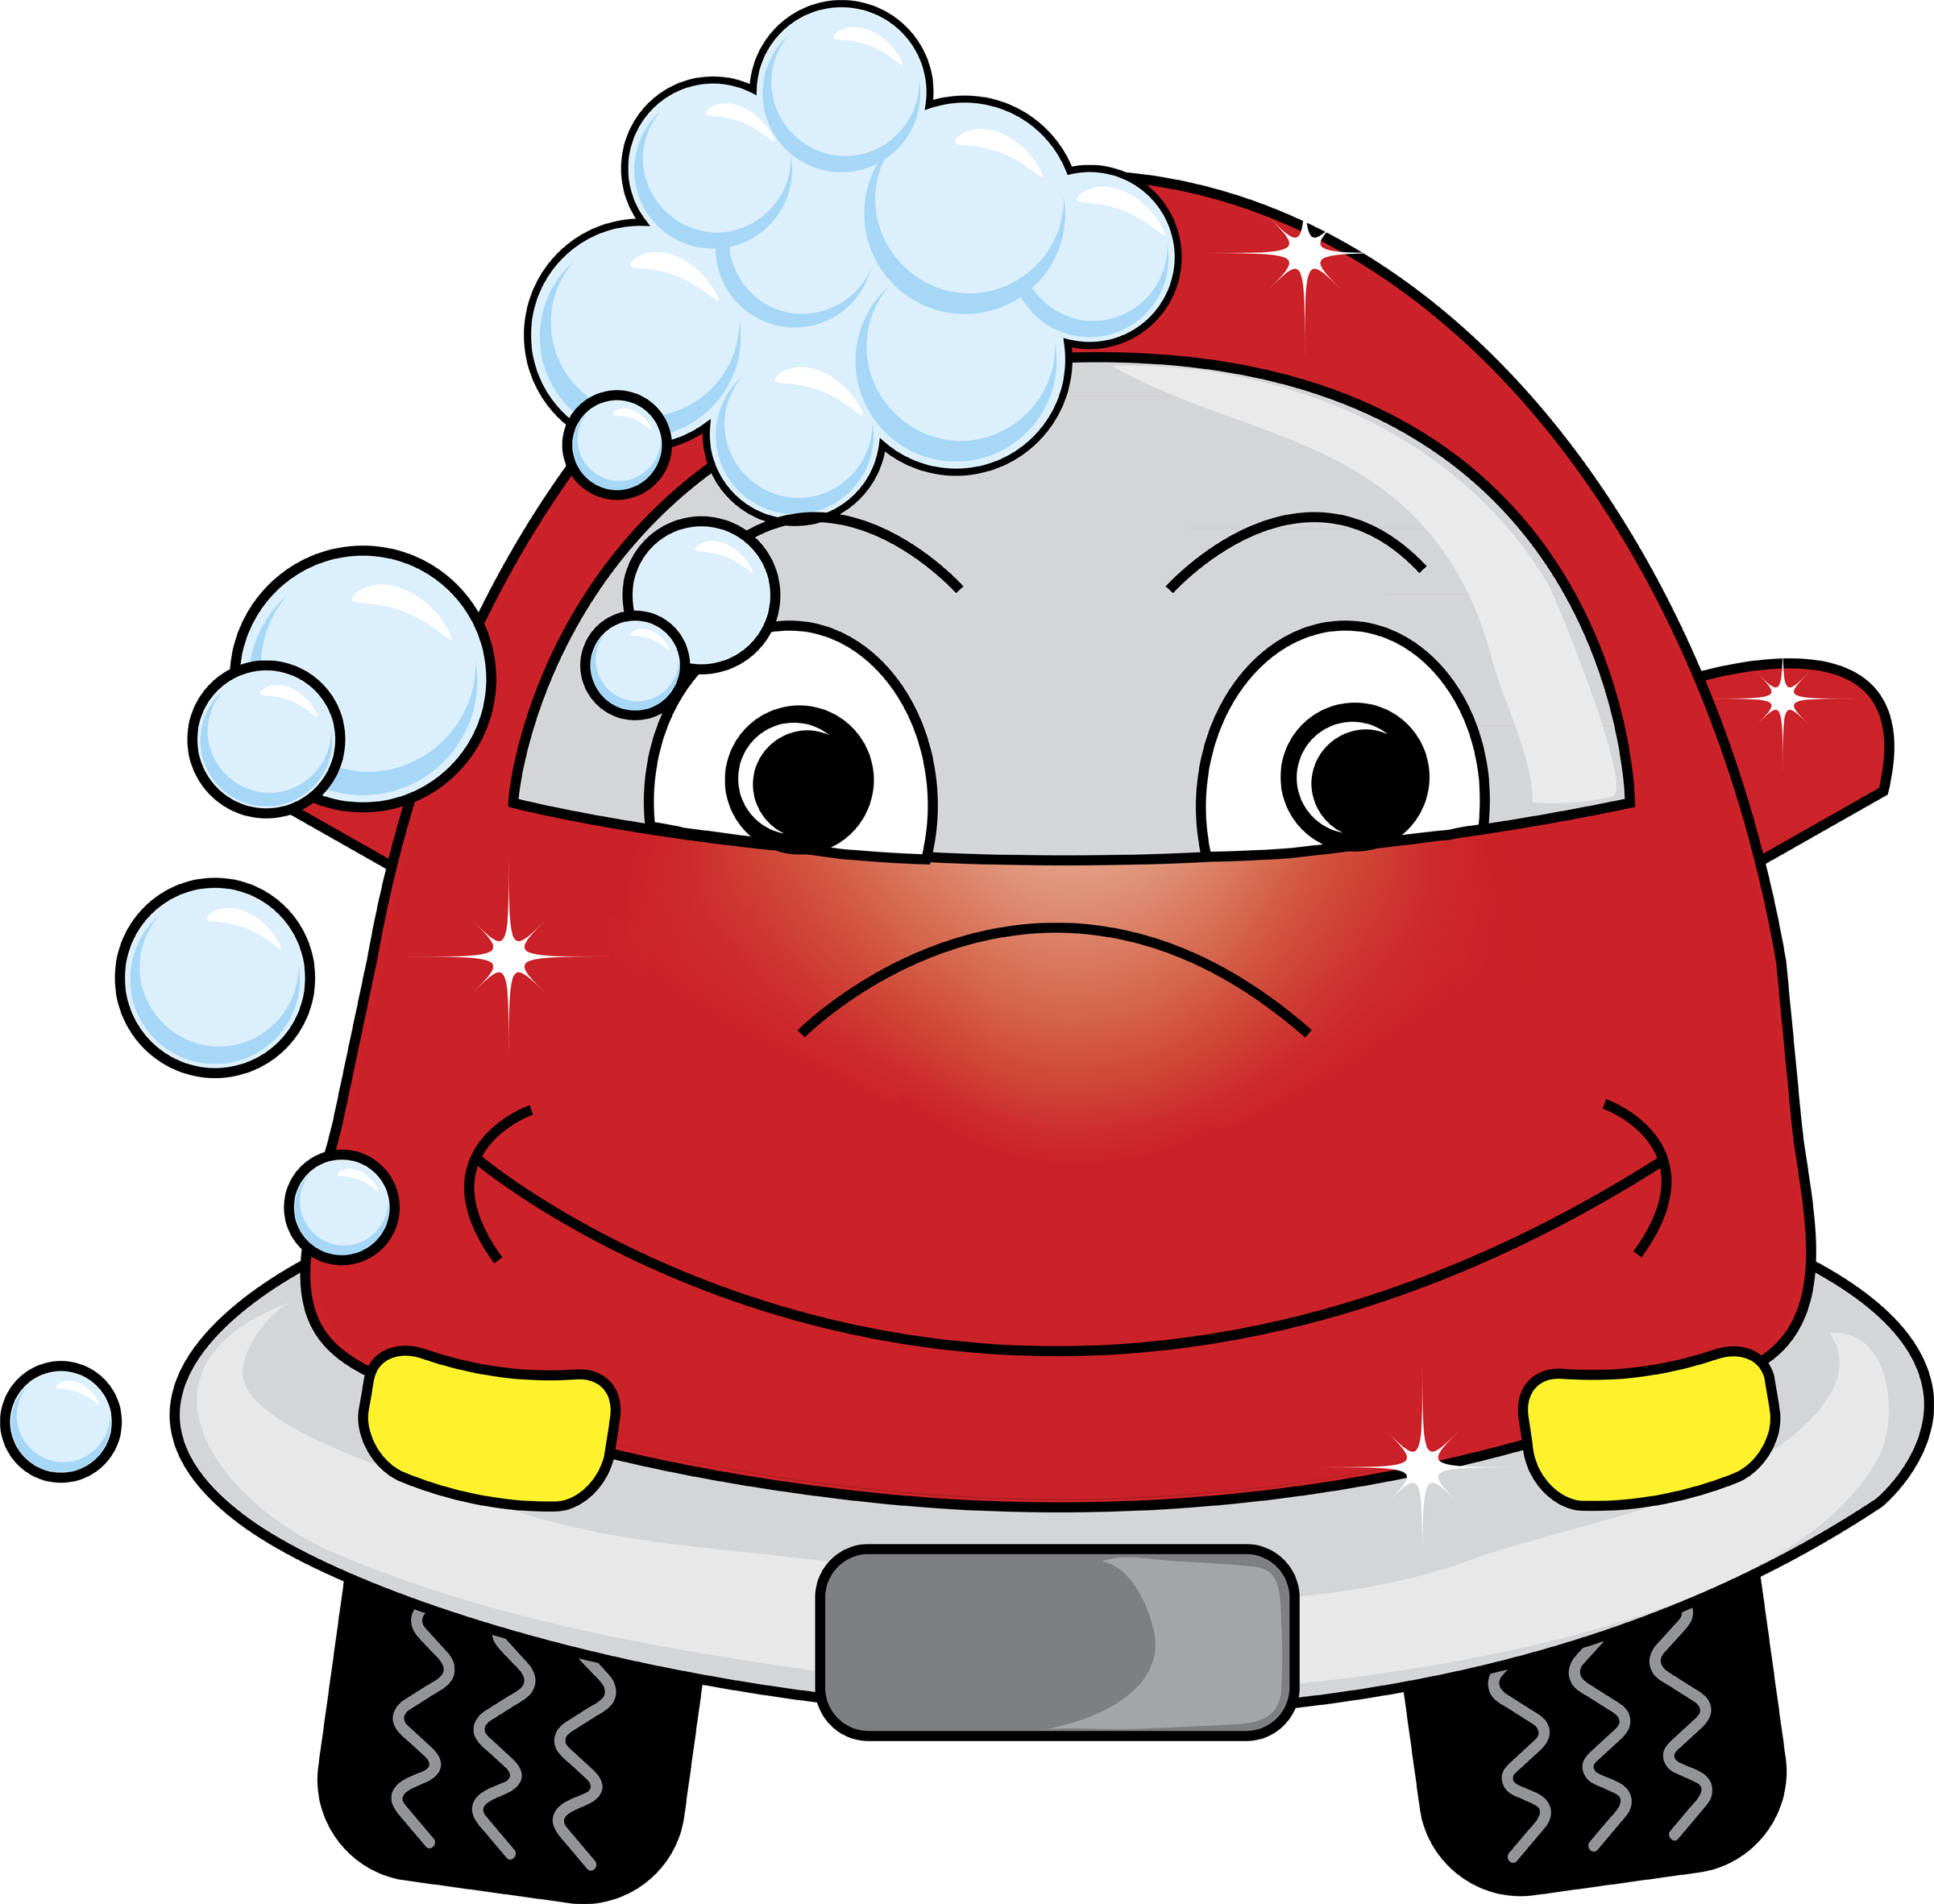 Clean clipart bucket. Car wash image group